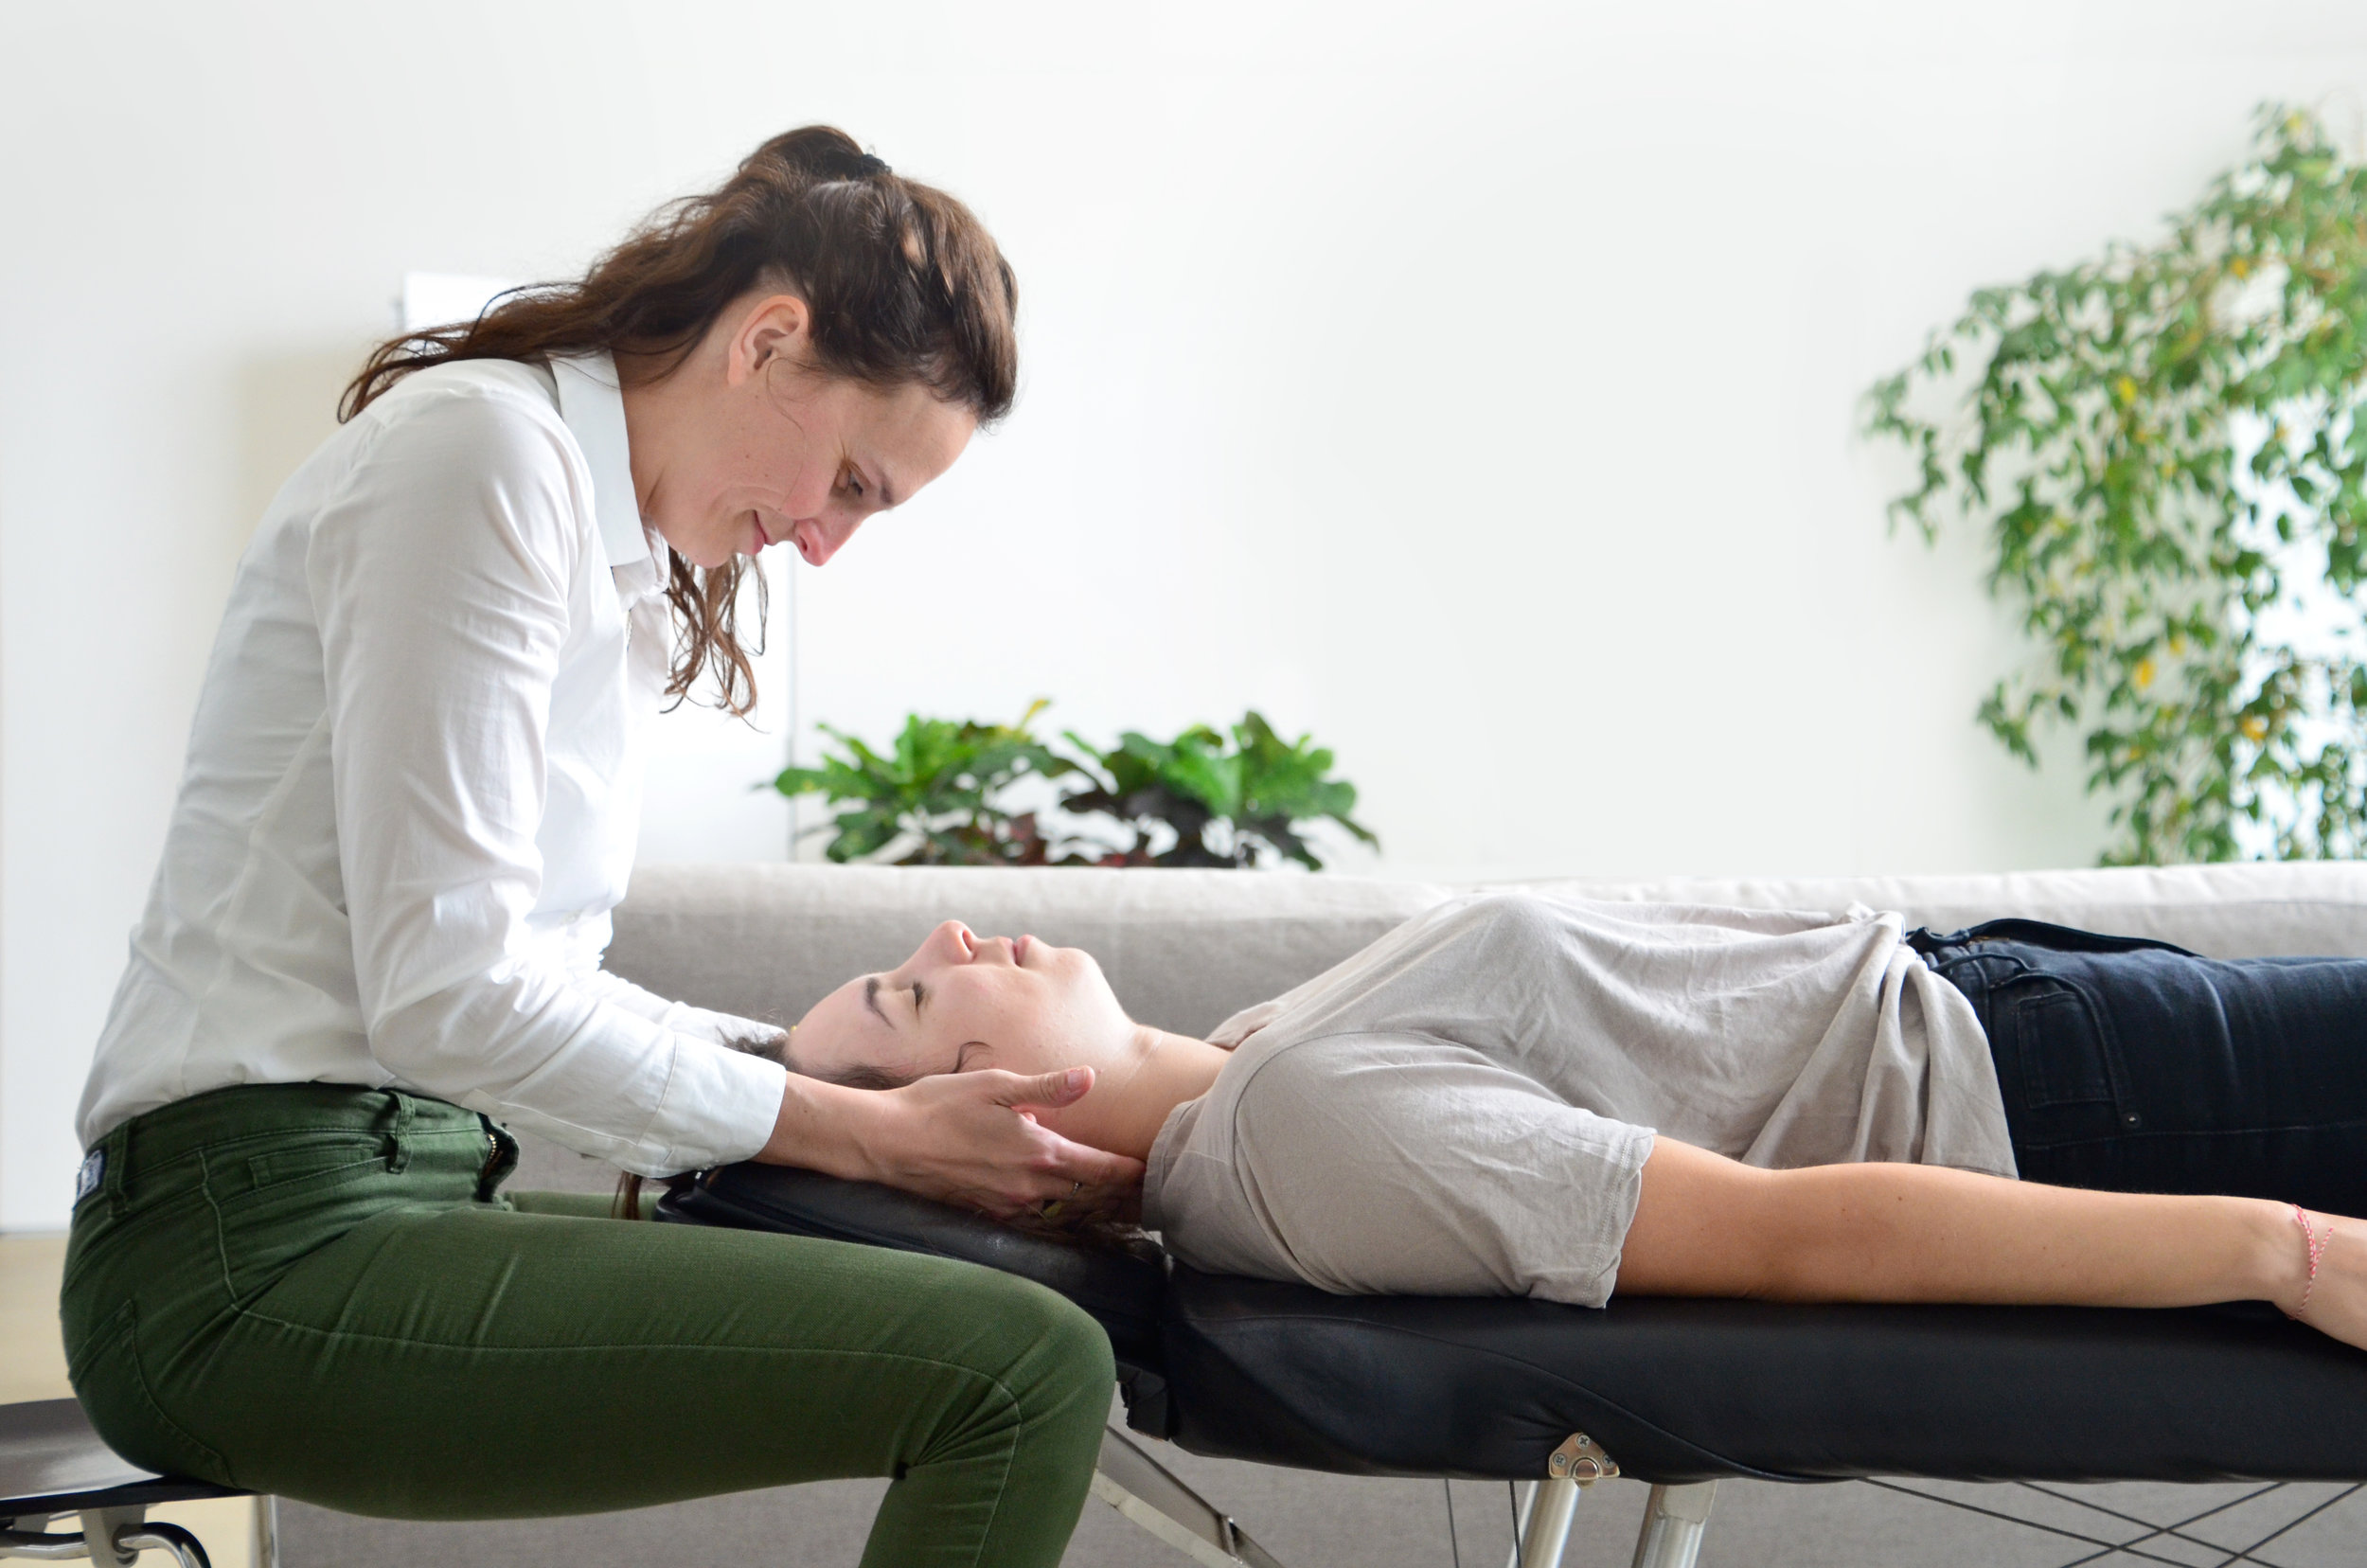 What Does a Chiropractic Adjustment Do? - SnapCrack Blog